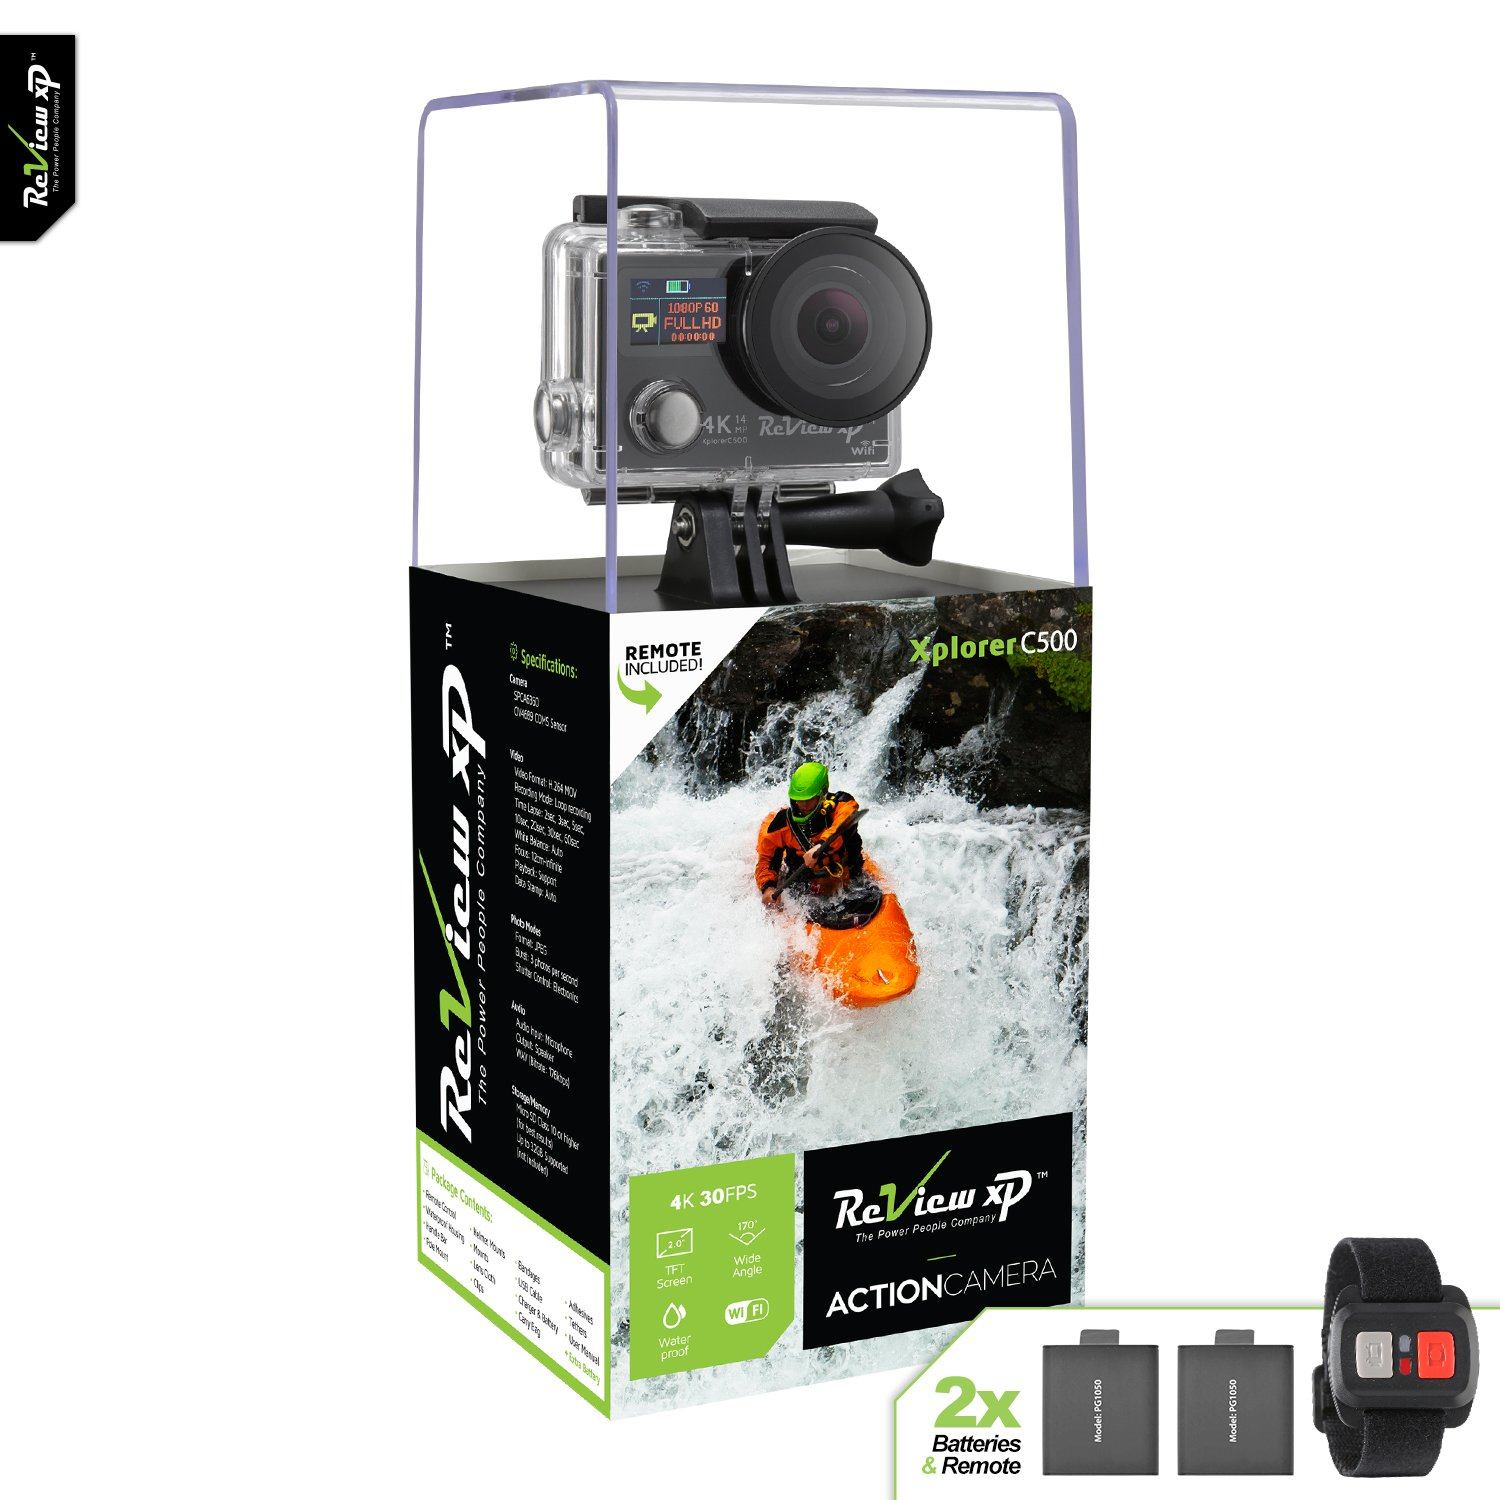 Review XP 4K HD Wi-Fi Waterproof Action Camera 14MP 30fps Sports Video Underwater Camcorder 170° Wide Angle Dual Lens Screen 2 Batteries Accessories Kit Remote Control - Black